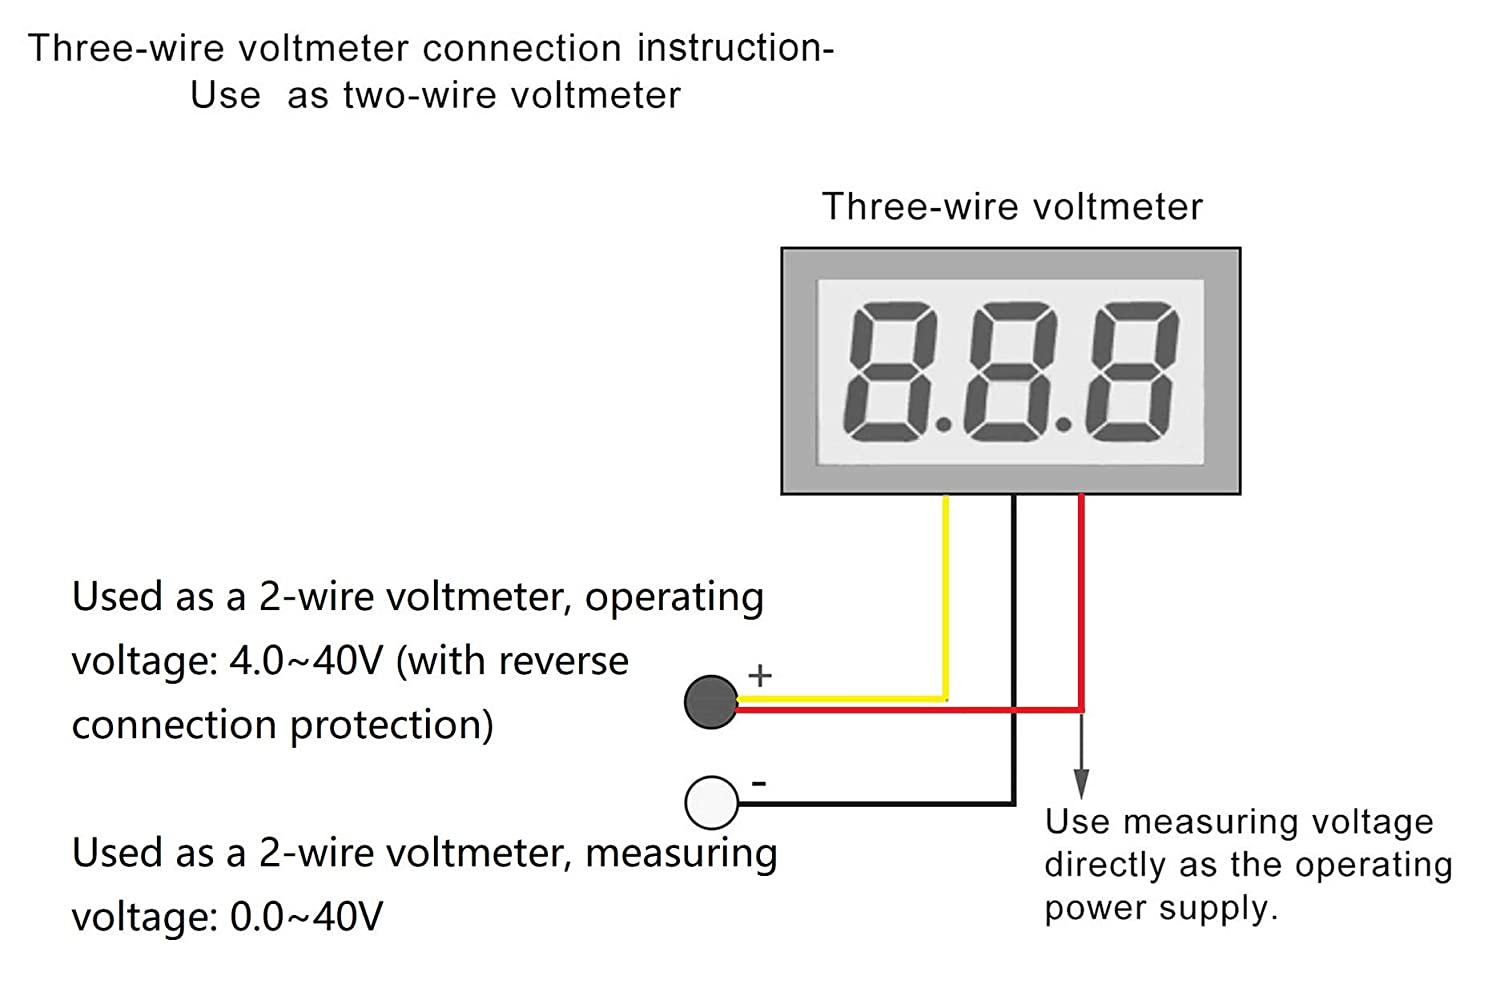 Led Wiring Diagram Of Voltmeter Library How To Test Car Fuse Box With Multimeter Noyito 028 Ultra Small Dc Digital 0 100v 3 Wire